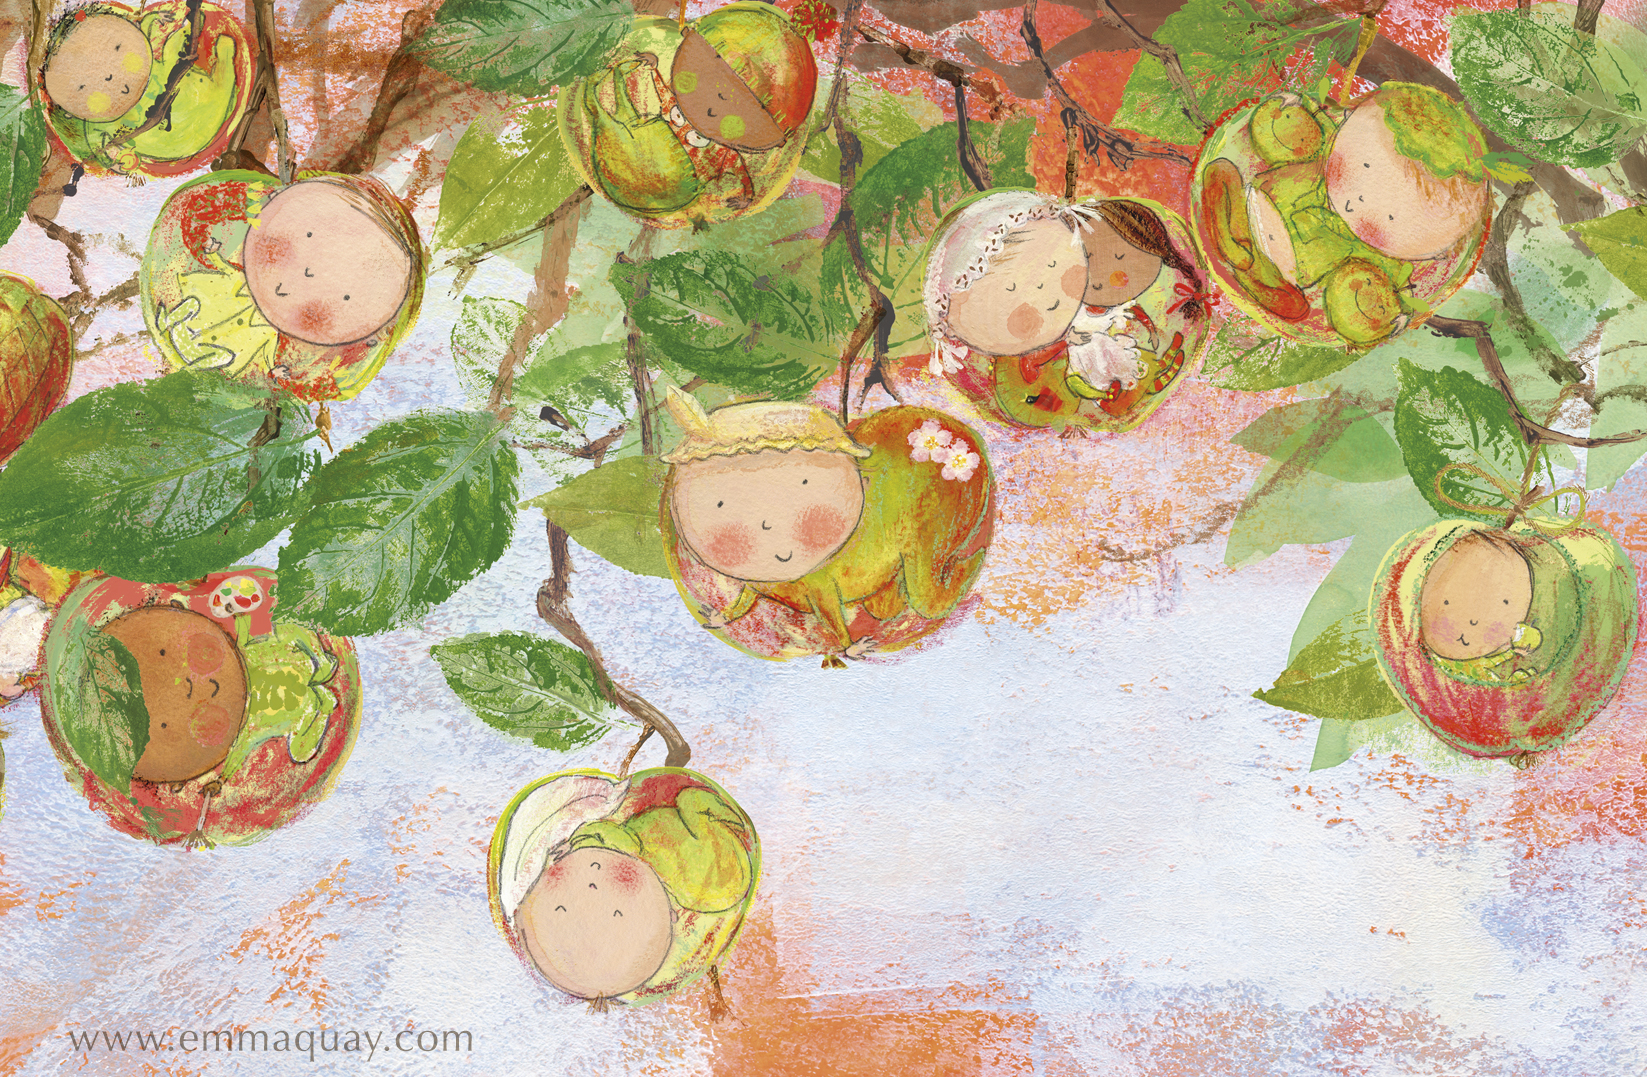 """If babies were apples"" illustration from MY SUNBEAM BABY by Emma Quay (ABC Books) - www.emmaquay.com"